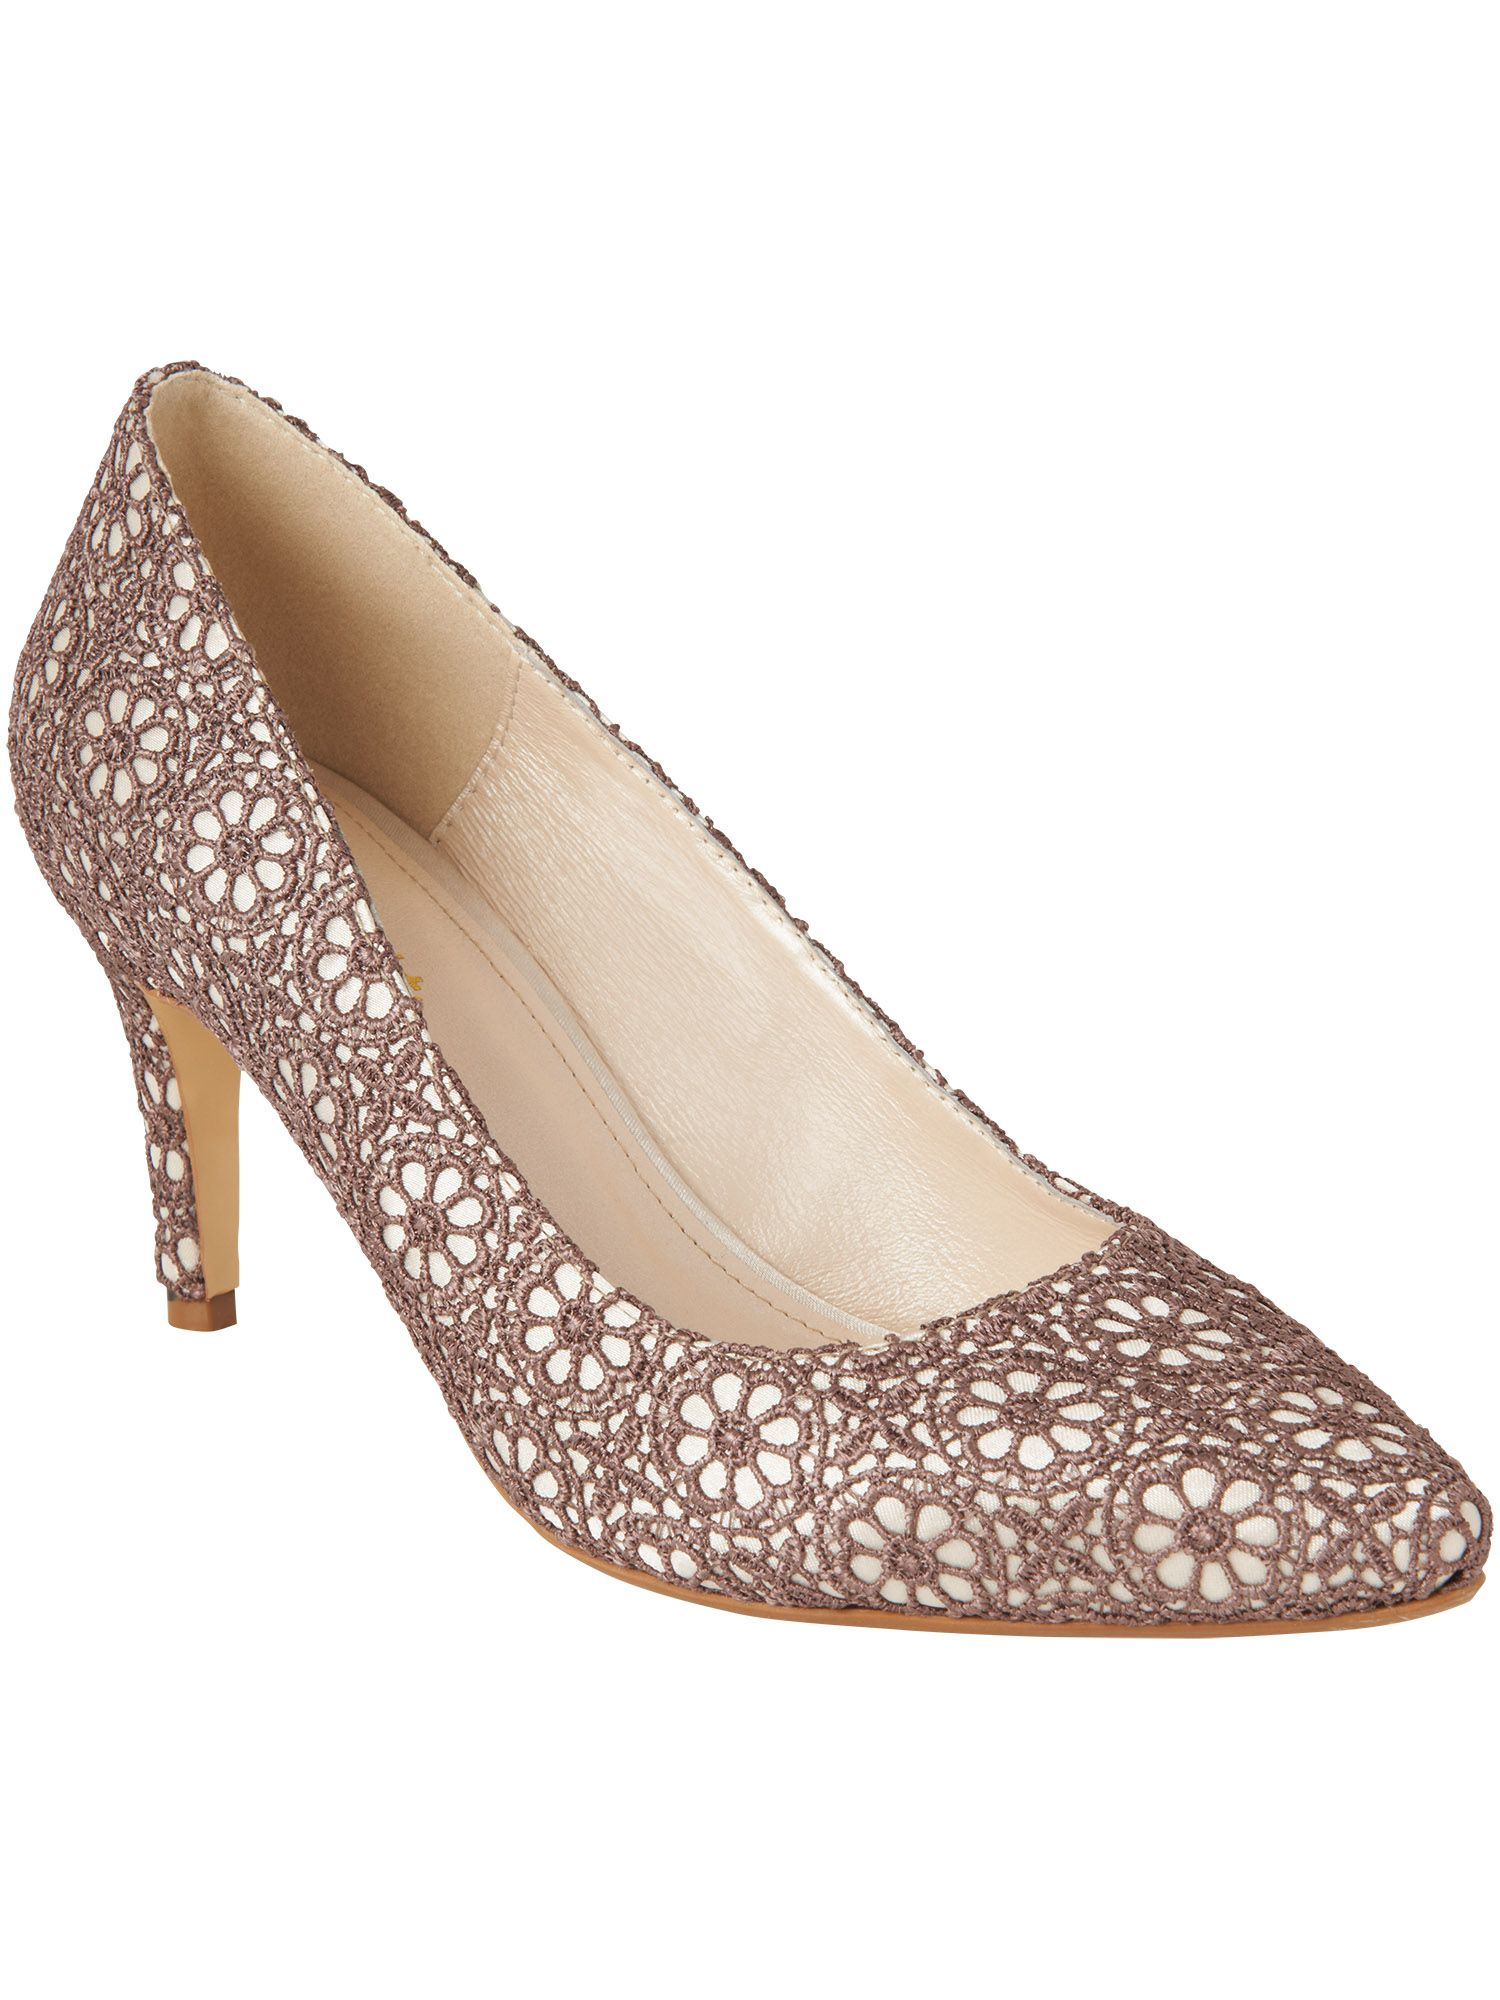 Shilouh lace court shoes